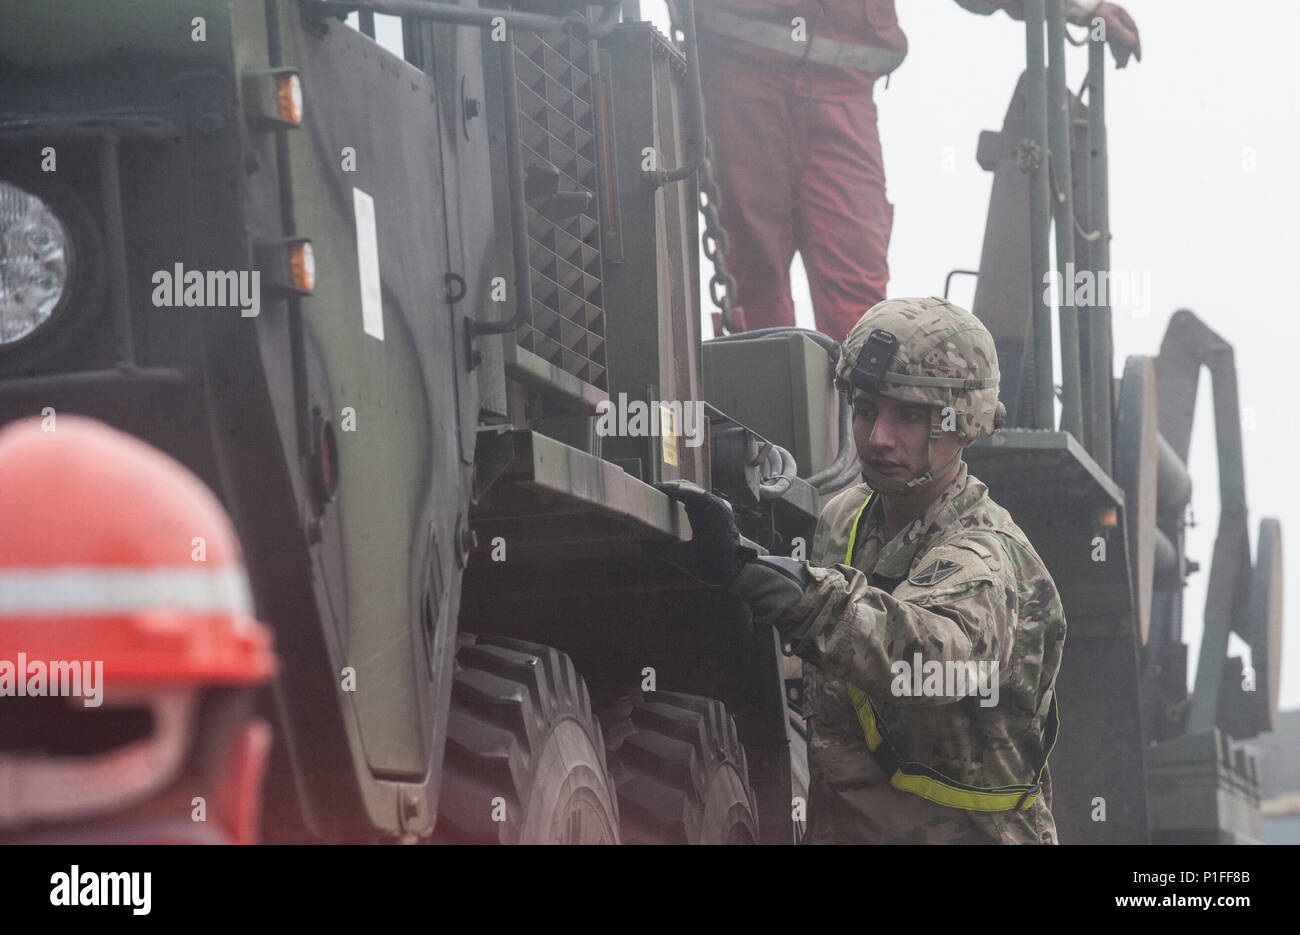 """U.S. Army Sergeant Joseph Harris, with the 5th Battalion, 7th Air Defense Artillery Regiment, assists in loading military support vehicles onto a railroad flatbed trailer at Rhine Ordnance Barracks in Kaiserslautern, Germany on Oct. 27, 2016. The military transport is in preparation for the 10th Army Air Missile Defense Commands """"Patriot Shock"""" exercise set to happen in Romania over the next several weeks. (DoD News photo by Tech. Sgt. Brian Kimball) - Stock Image"""